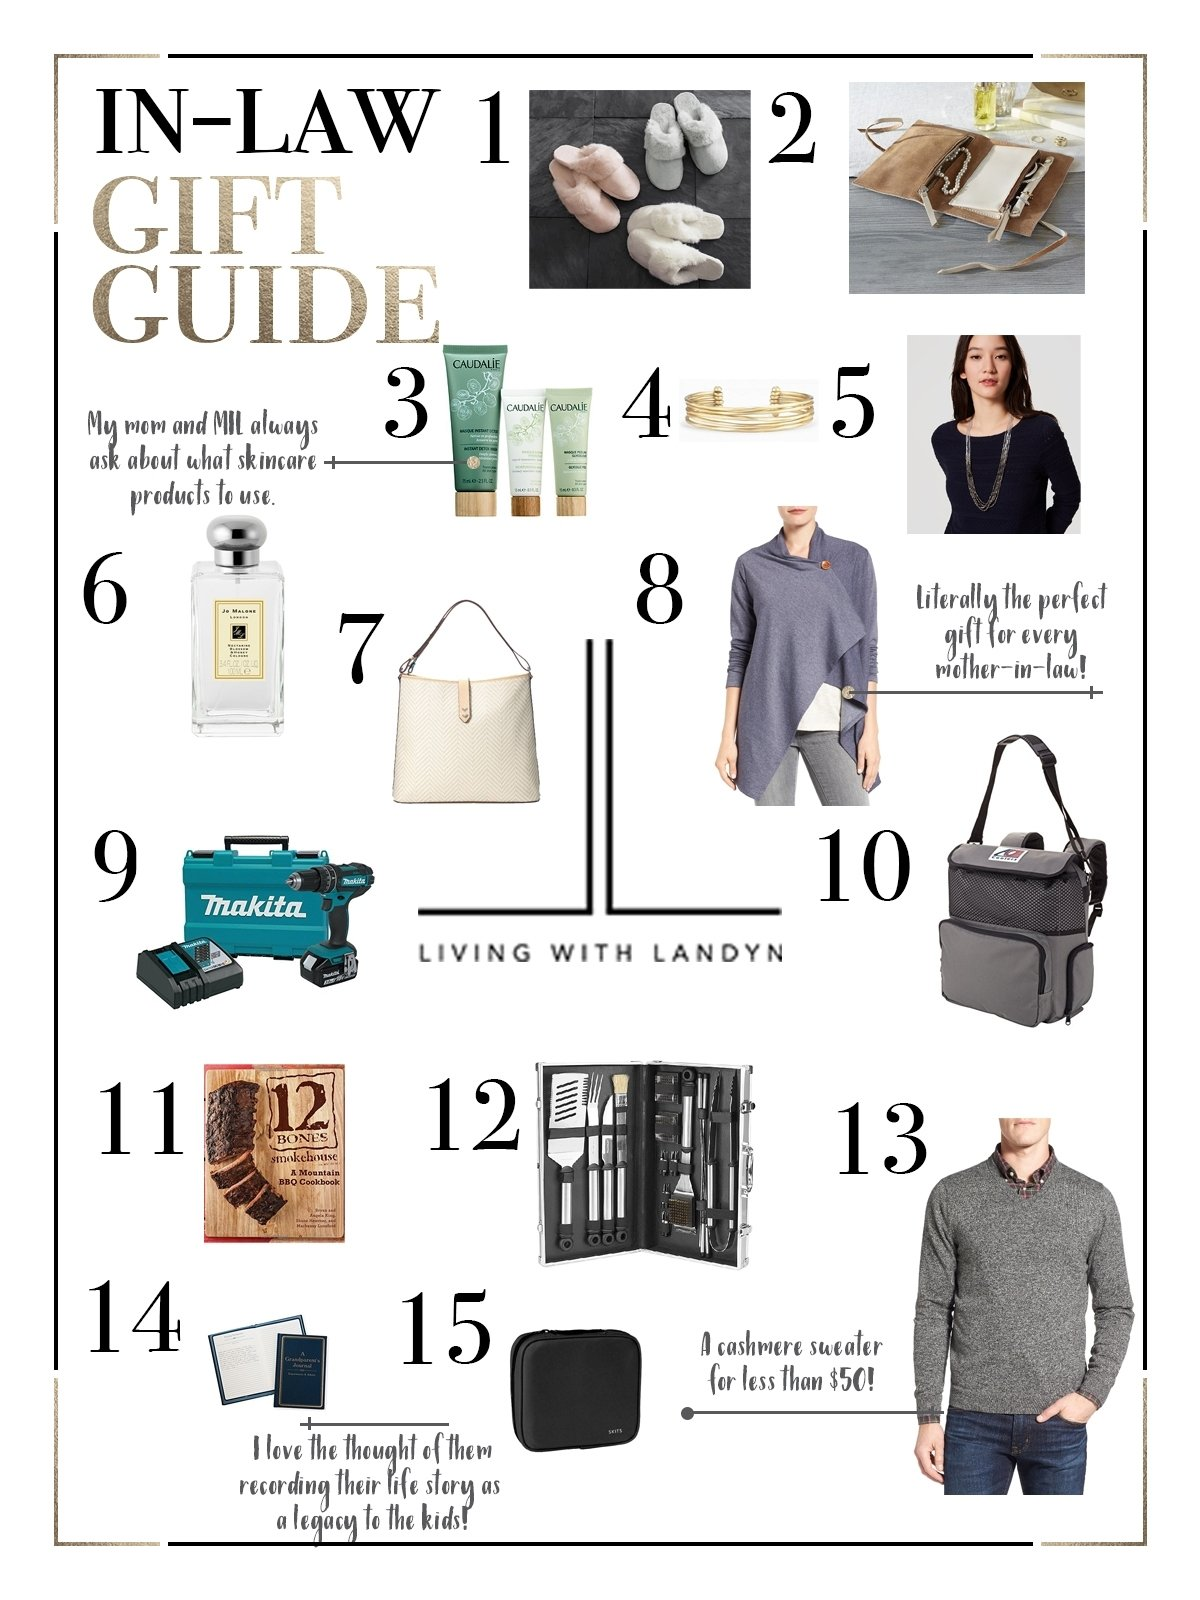 10 Most Recommended Gift Ideas For Father In Law if you are struggling with what to get your in laws for christmas 5